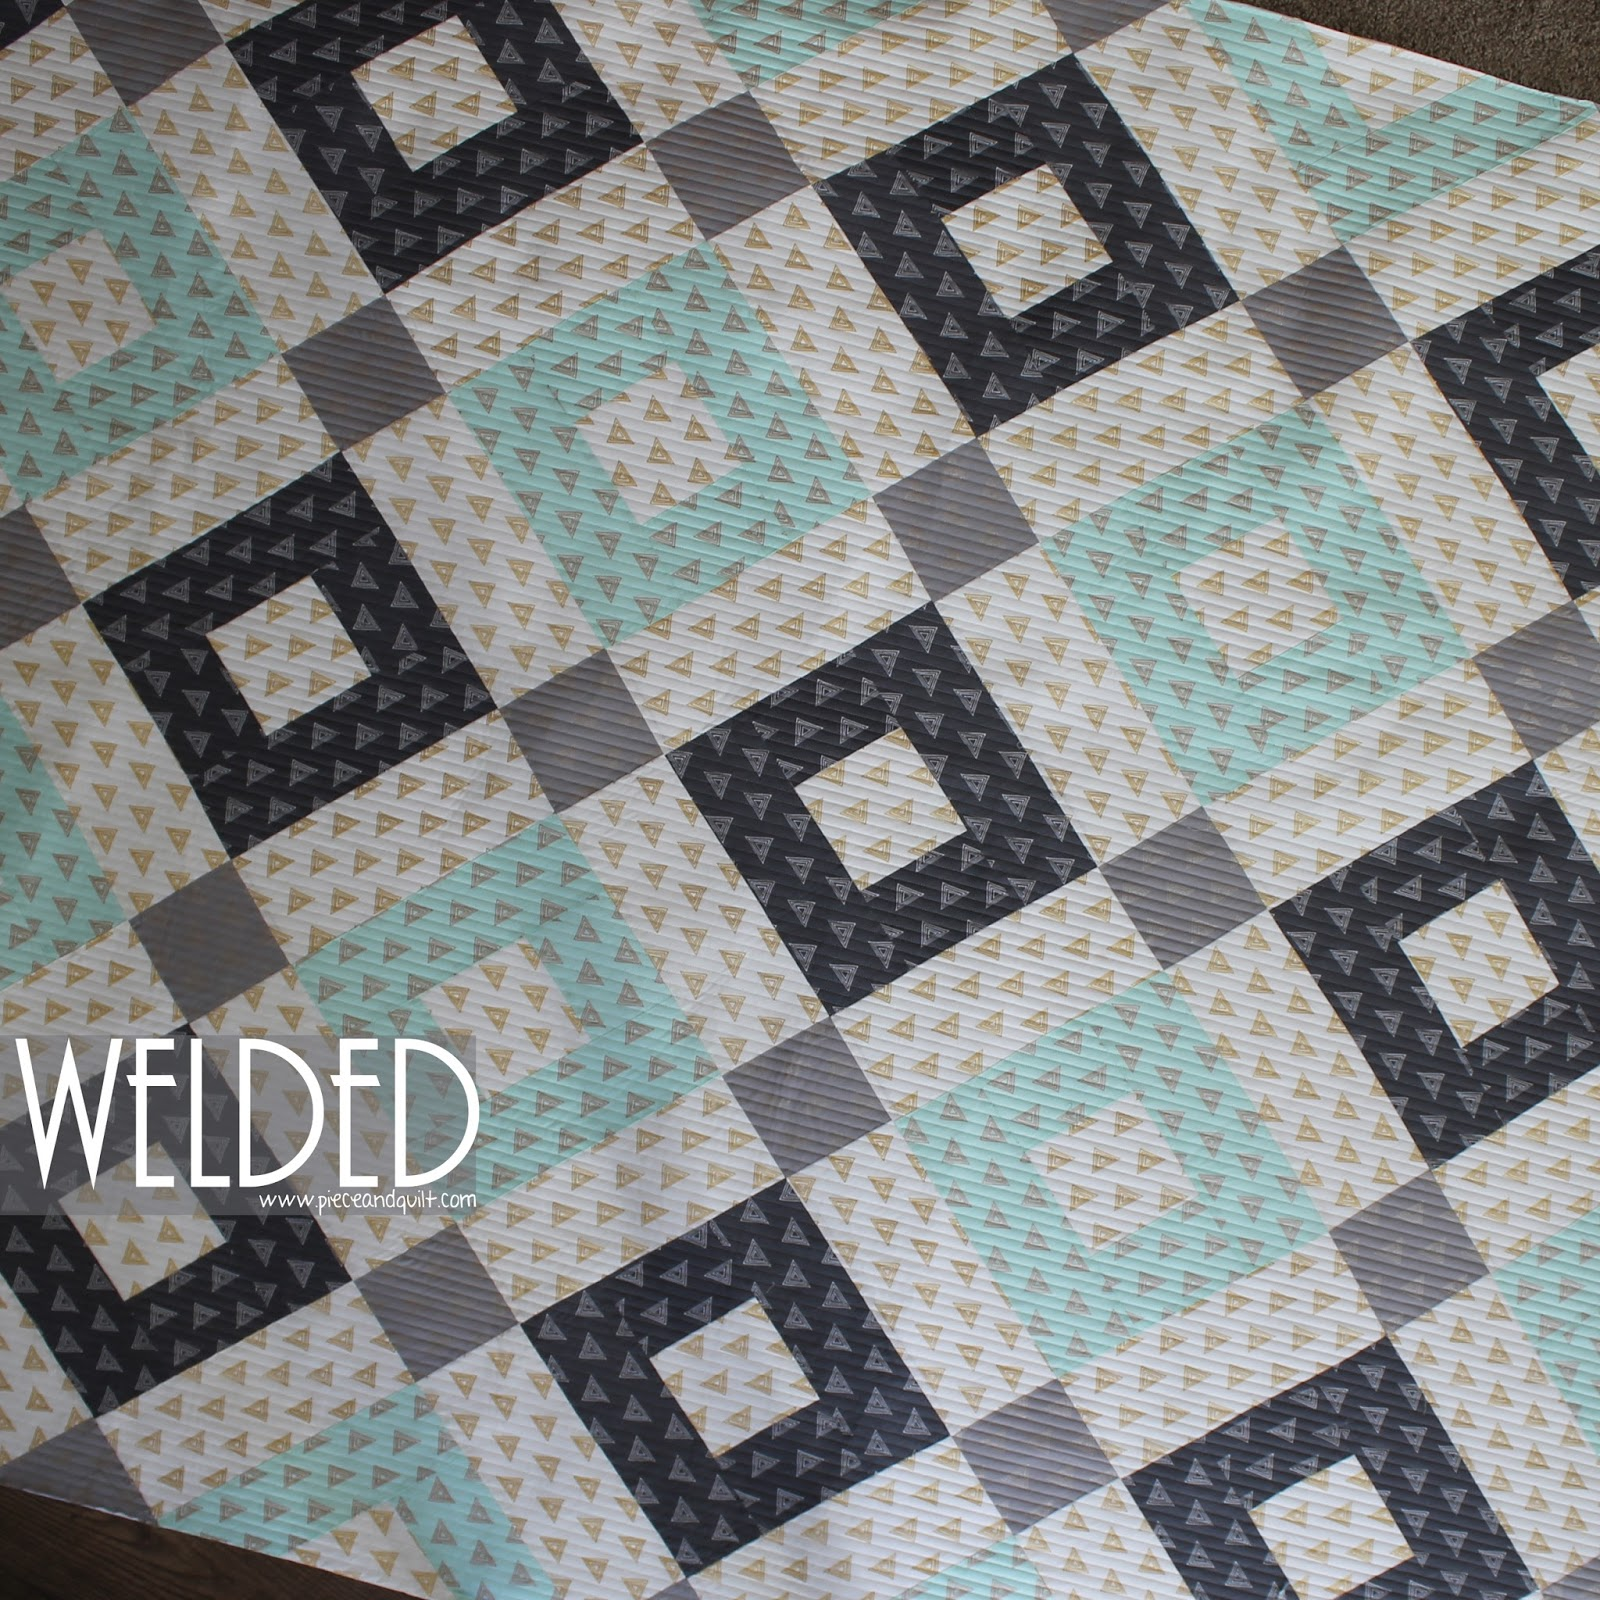 Piece N Quilt: Welded - An AGF Stitched Free Pattern & a Give-Away!